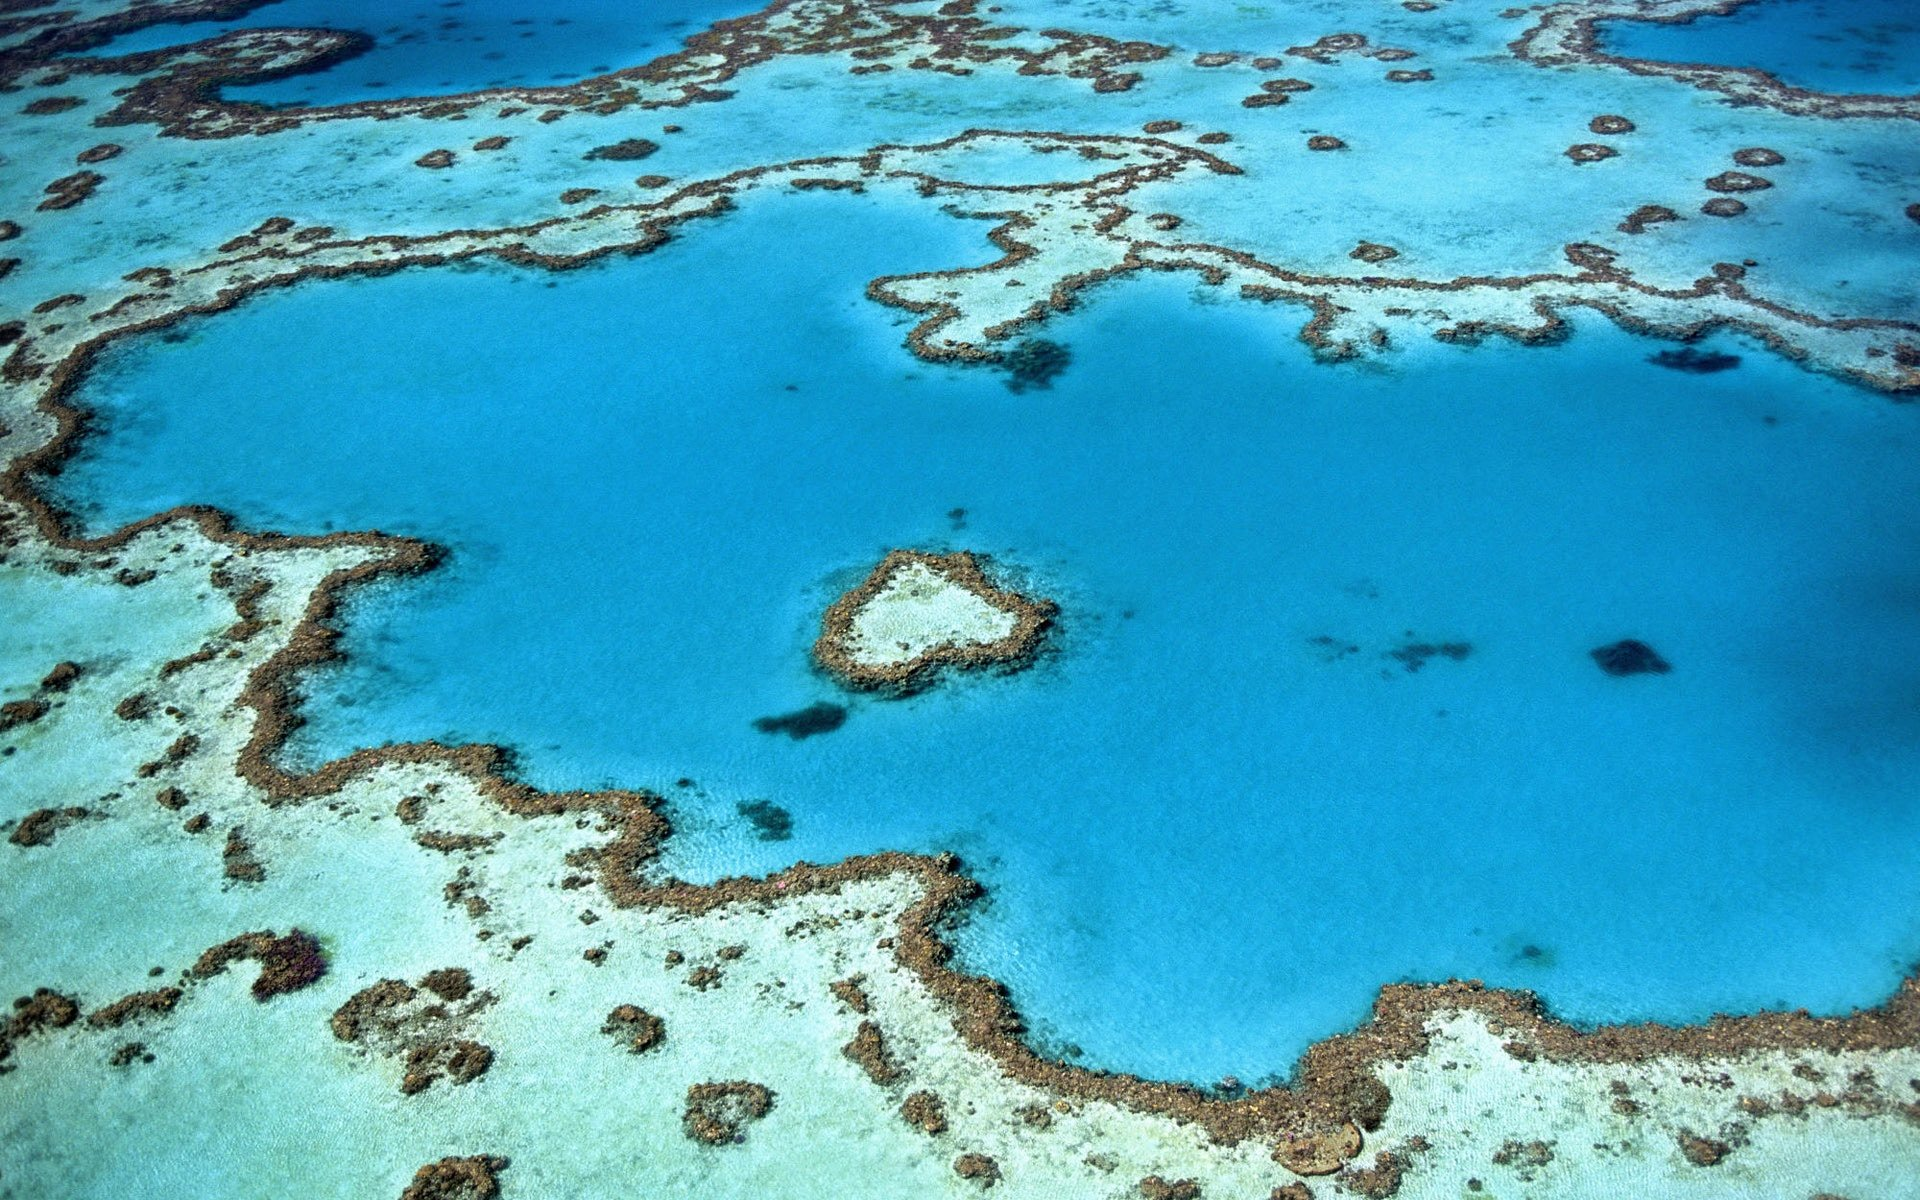 Sunscreen, toxic oxybenzone and damage to the coral reefs